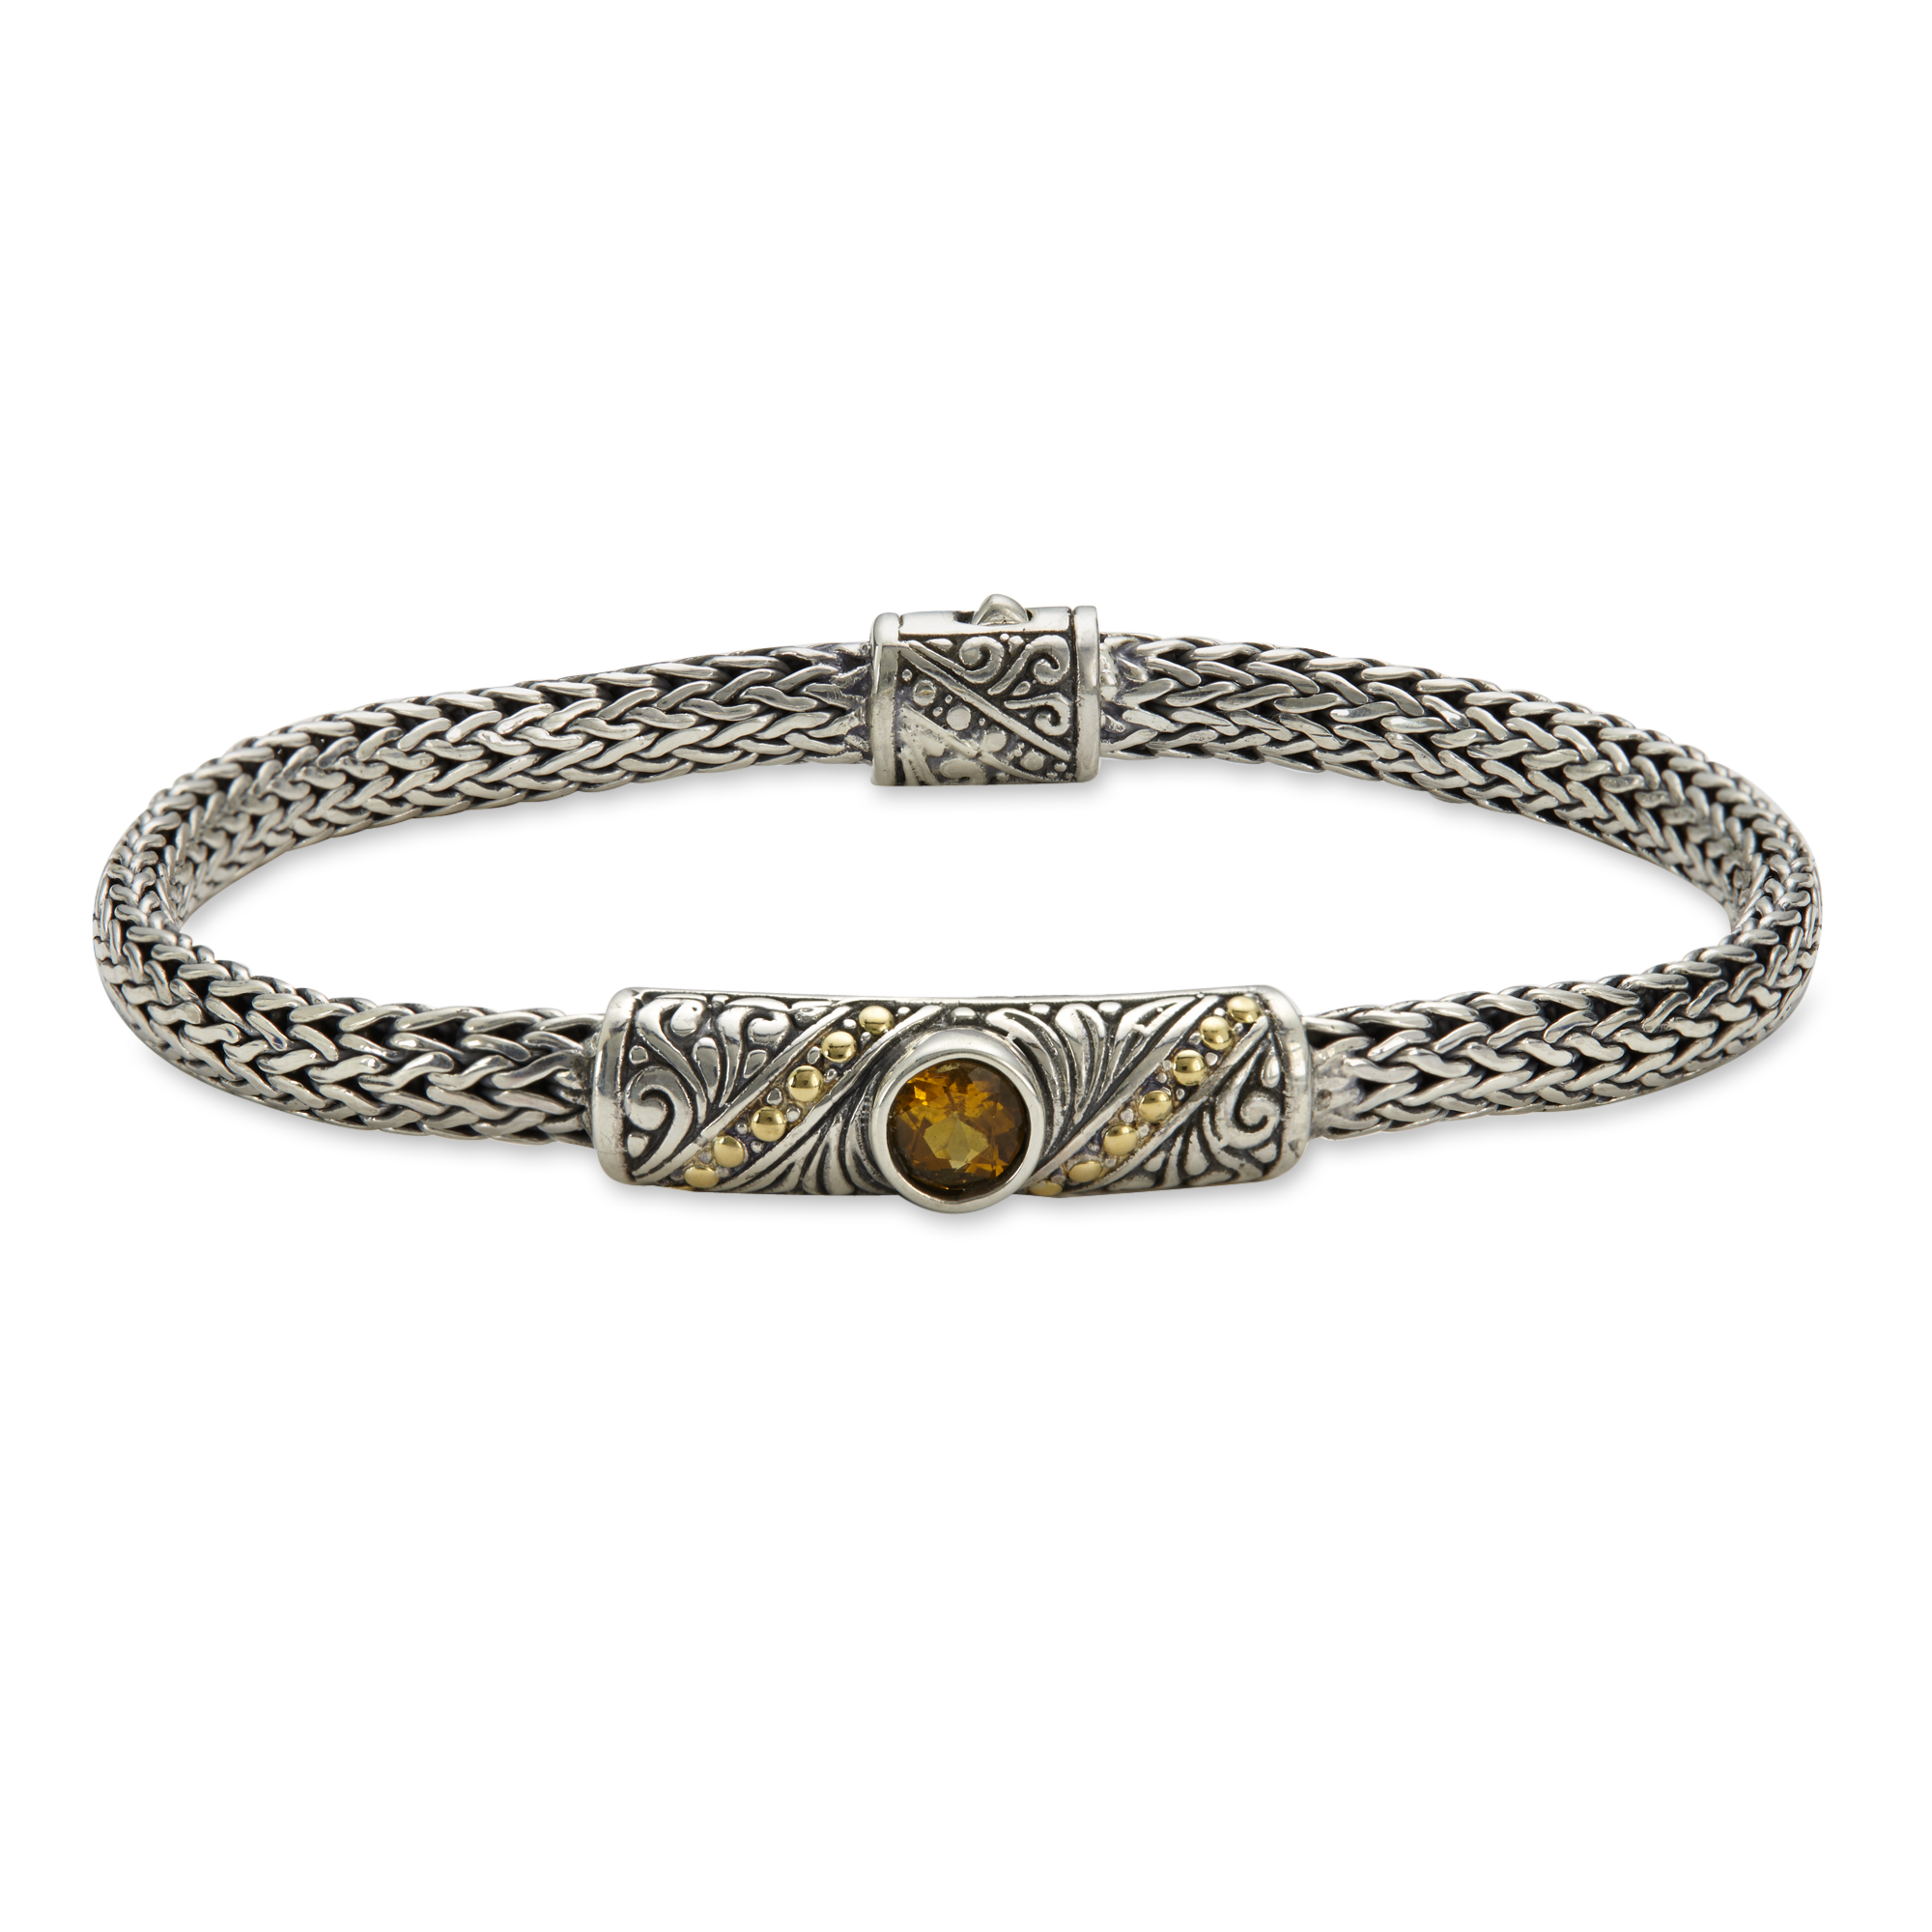 Citrine Sterling Silver Woven Bracelet with 18K Gold Accents